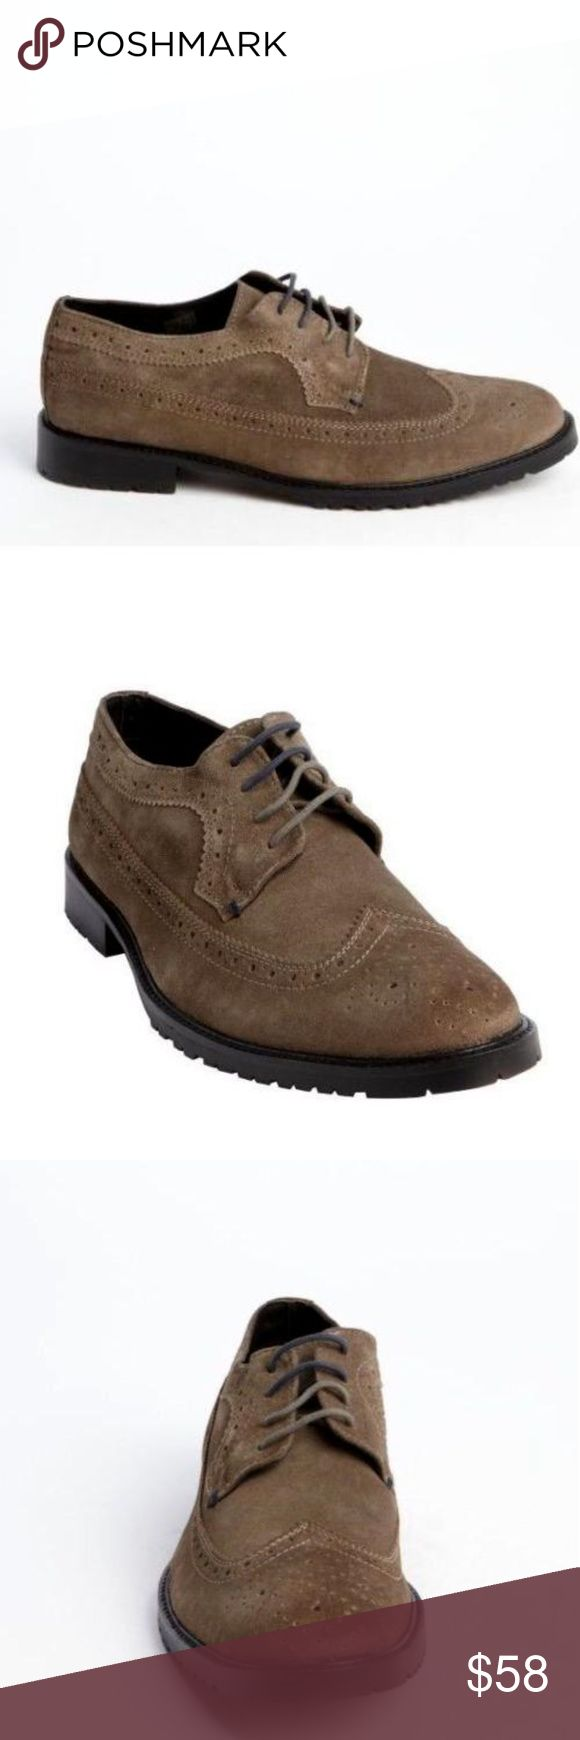 Ben Sherman Men's Gray Suede Wingtip Shoes 100% Authentic Ben Sherman!  Buy with confidence!  Features: • Brand: Ben Sherman • Gender: Men's • Color: Gray • Material: Suede • Style: Wingtip Tooled Max Oxfords • Size US 8.5, EU 41.5 • Style: BN400029-01G • Imported   Please feel free to ask any questions. Happy shopping! Ben Sherman Shoes